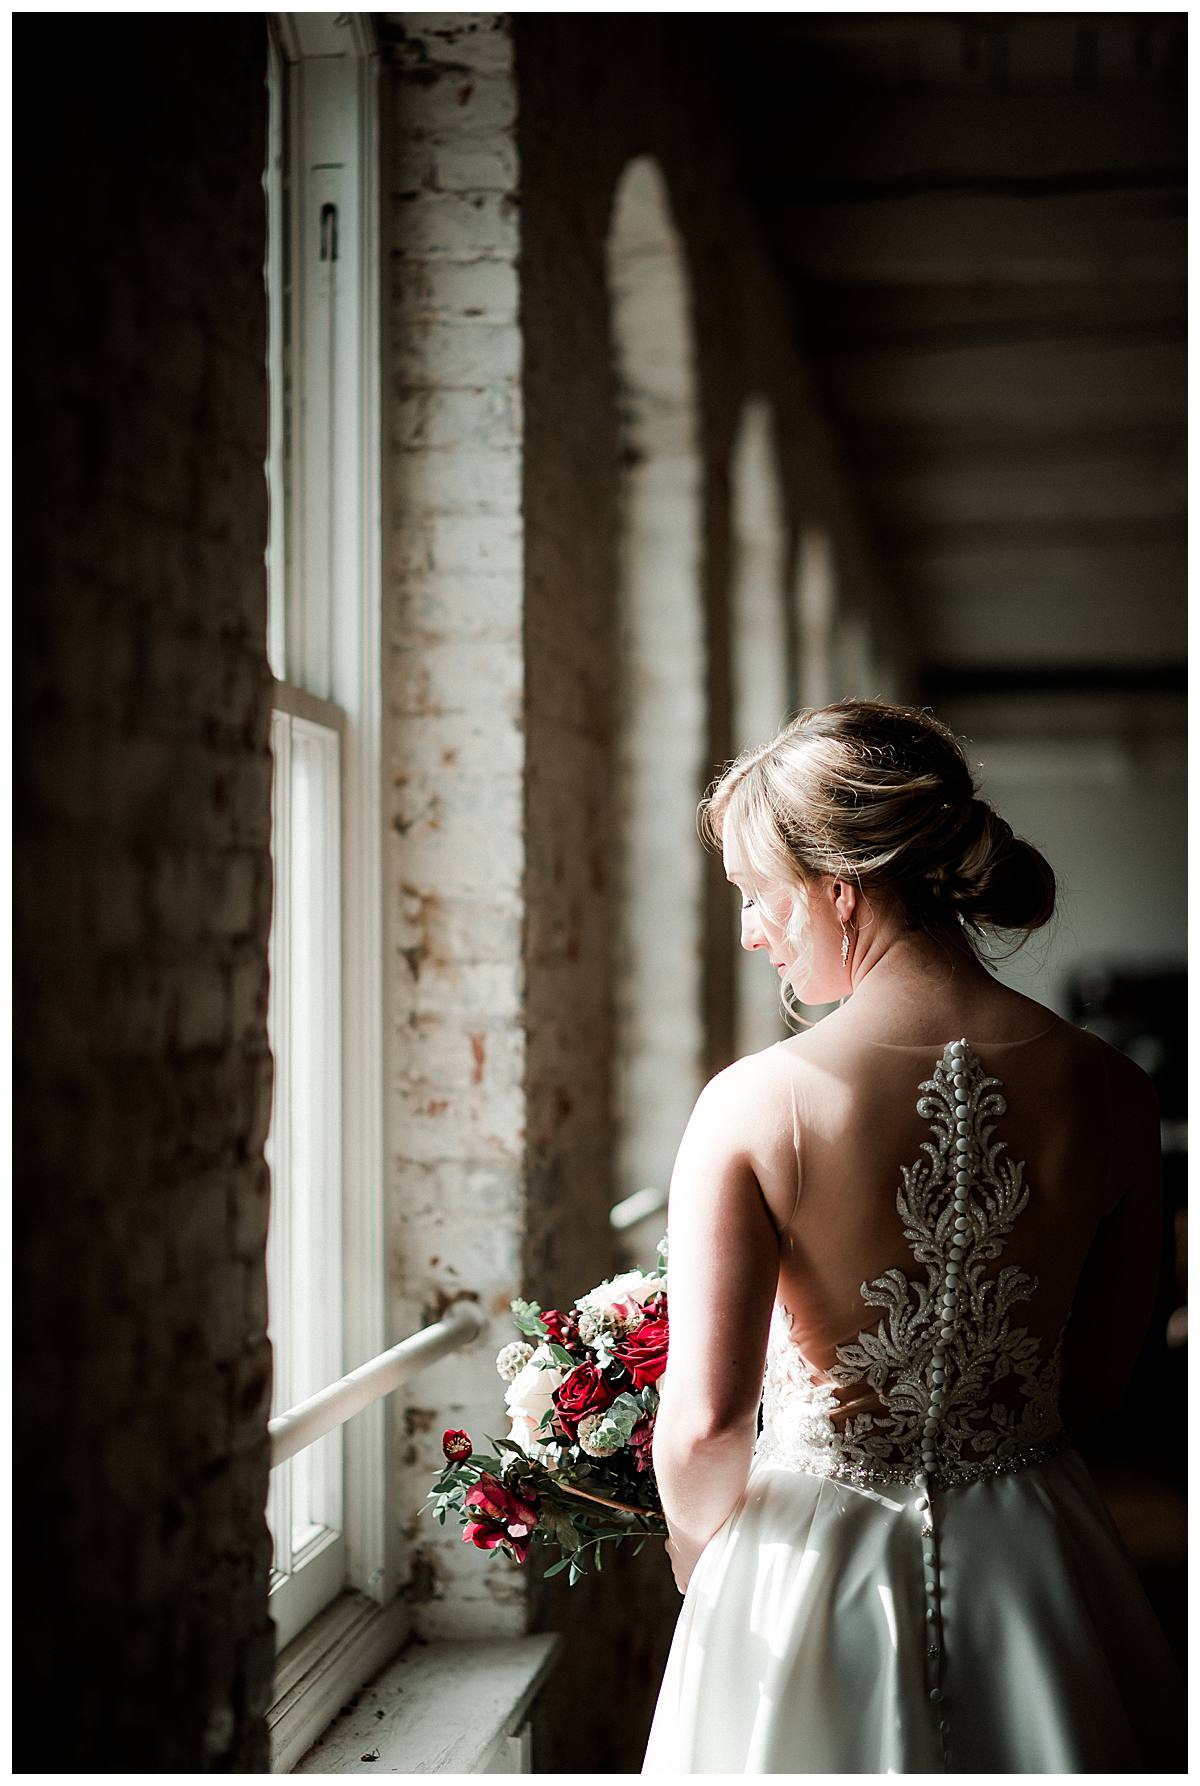 Bridal portrait near a window inside the Thomas Kay Woolen Mill at the Willamette Heritage Center